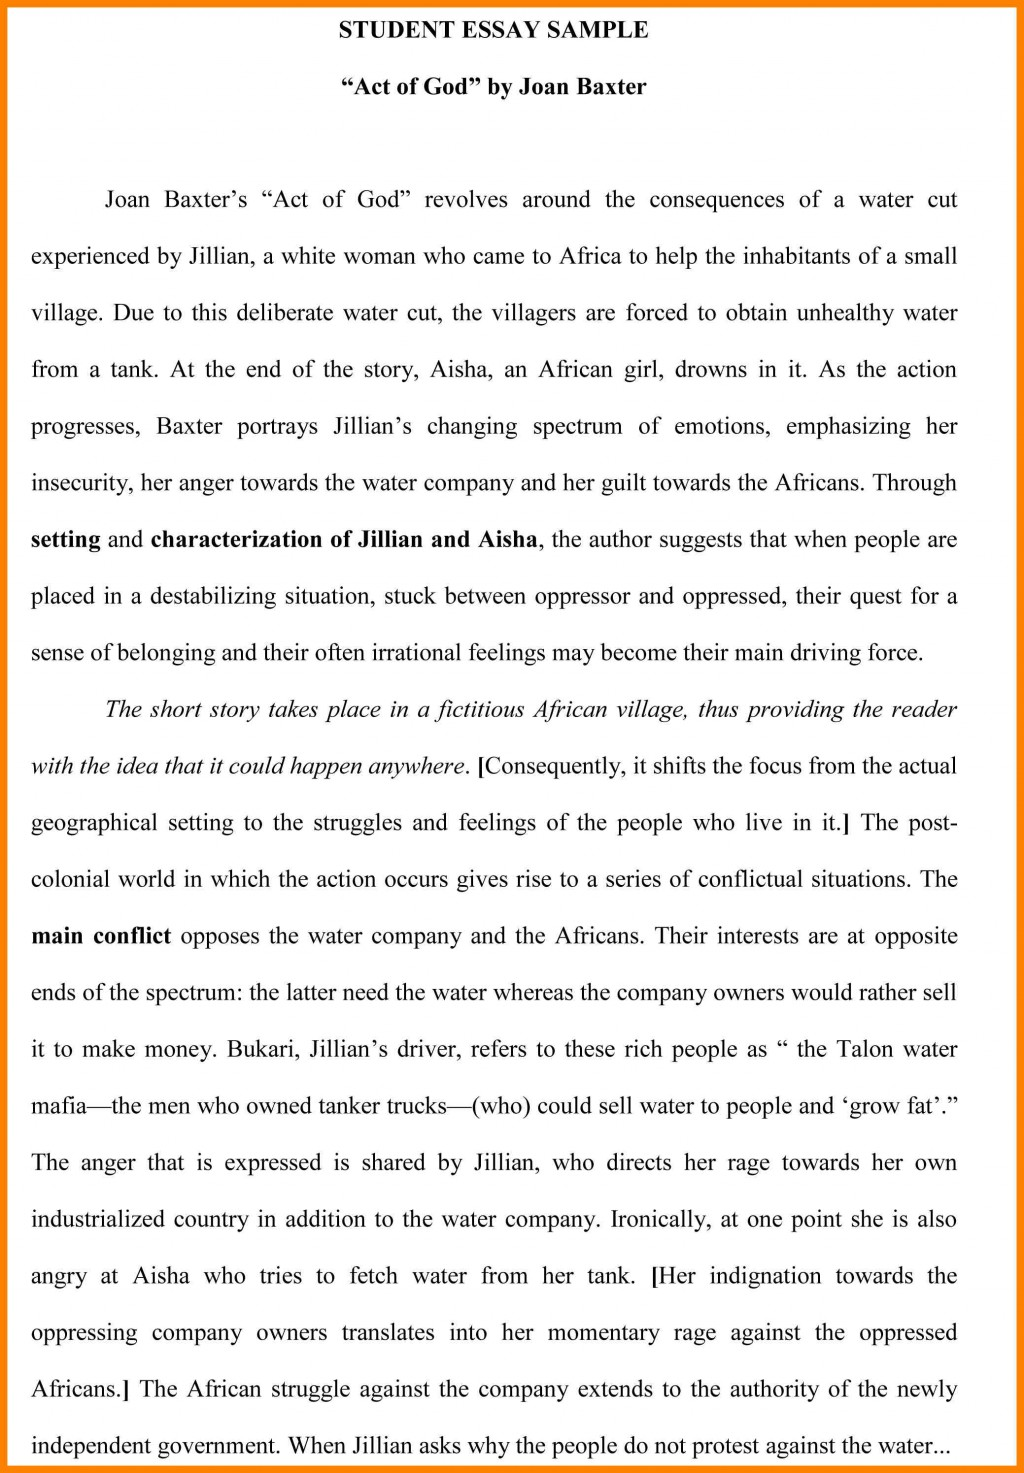 002 Examples Of Process Essays Pdf Essay Example College St Paper Sample Samples Ielts Topics How To Bake Cake Processchronological Stupendous Photo High School Tagalog For Students Large